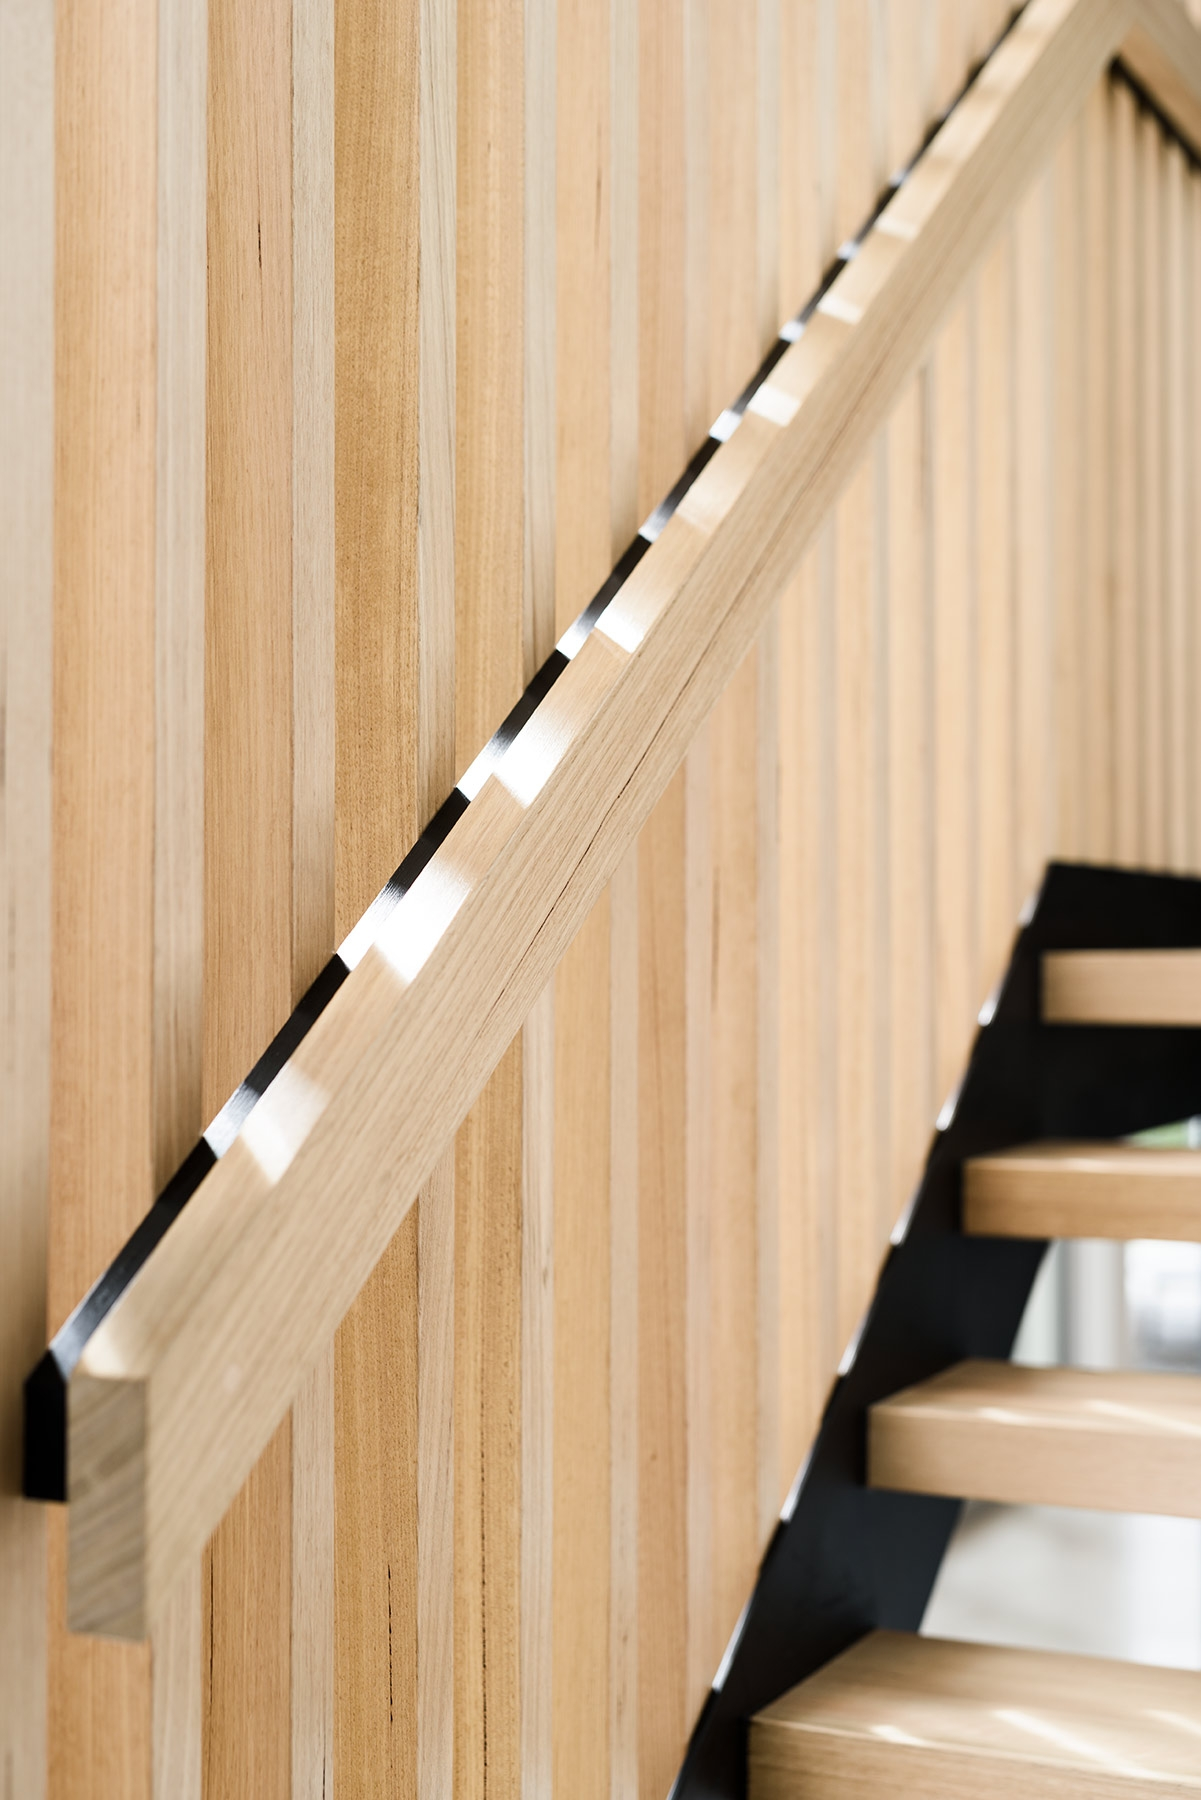 Stair Treads Victorian Ash Balustrade Feature With Regard To Contemporary Stair Treads (View 15 of 15)